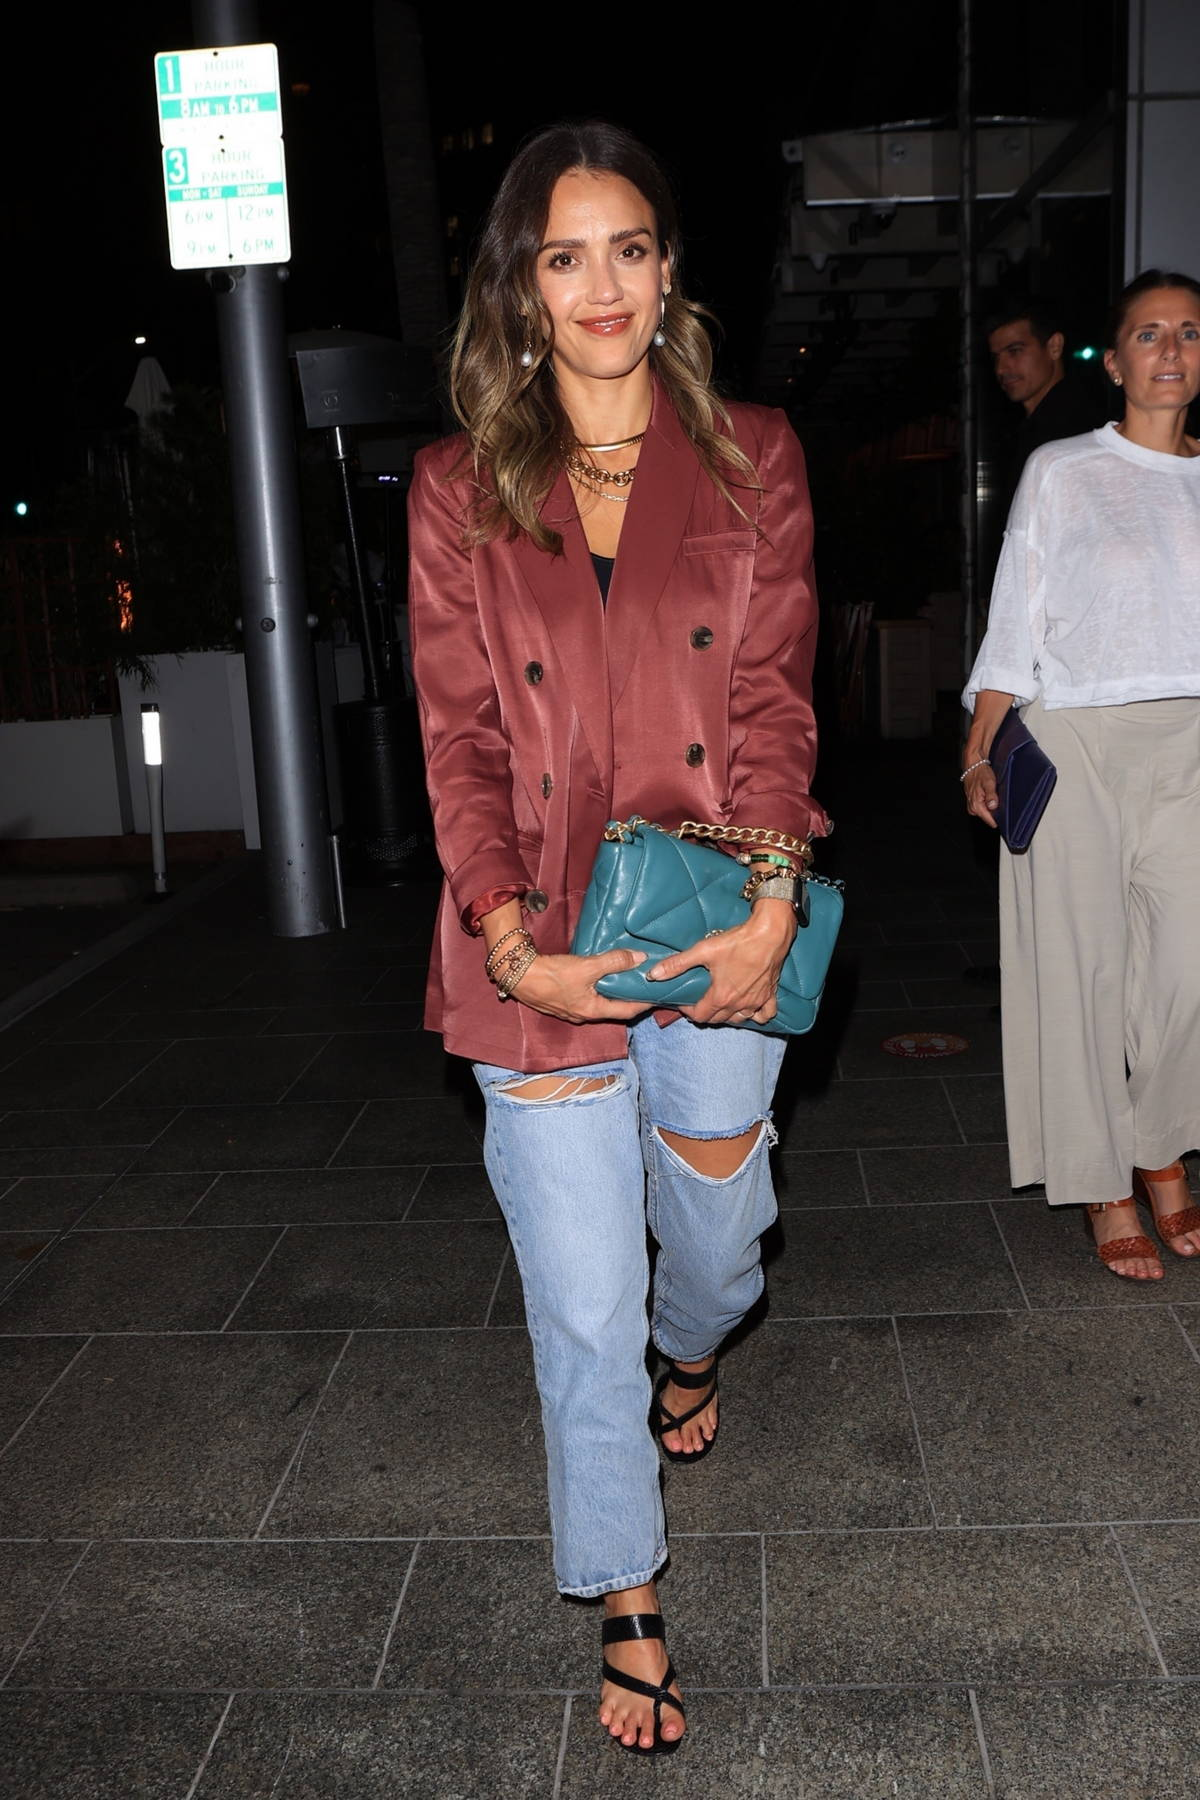 Jessica Alba is all smiles while out on a date night with husband Cash Warren at Avra in Beverly Hills, California